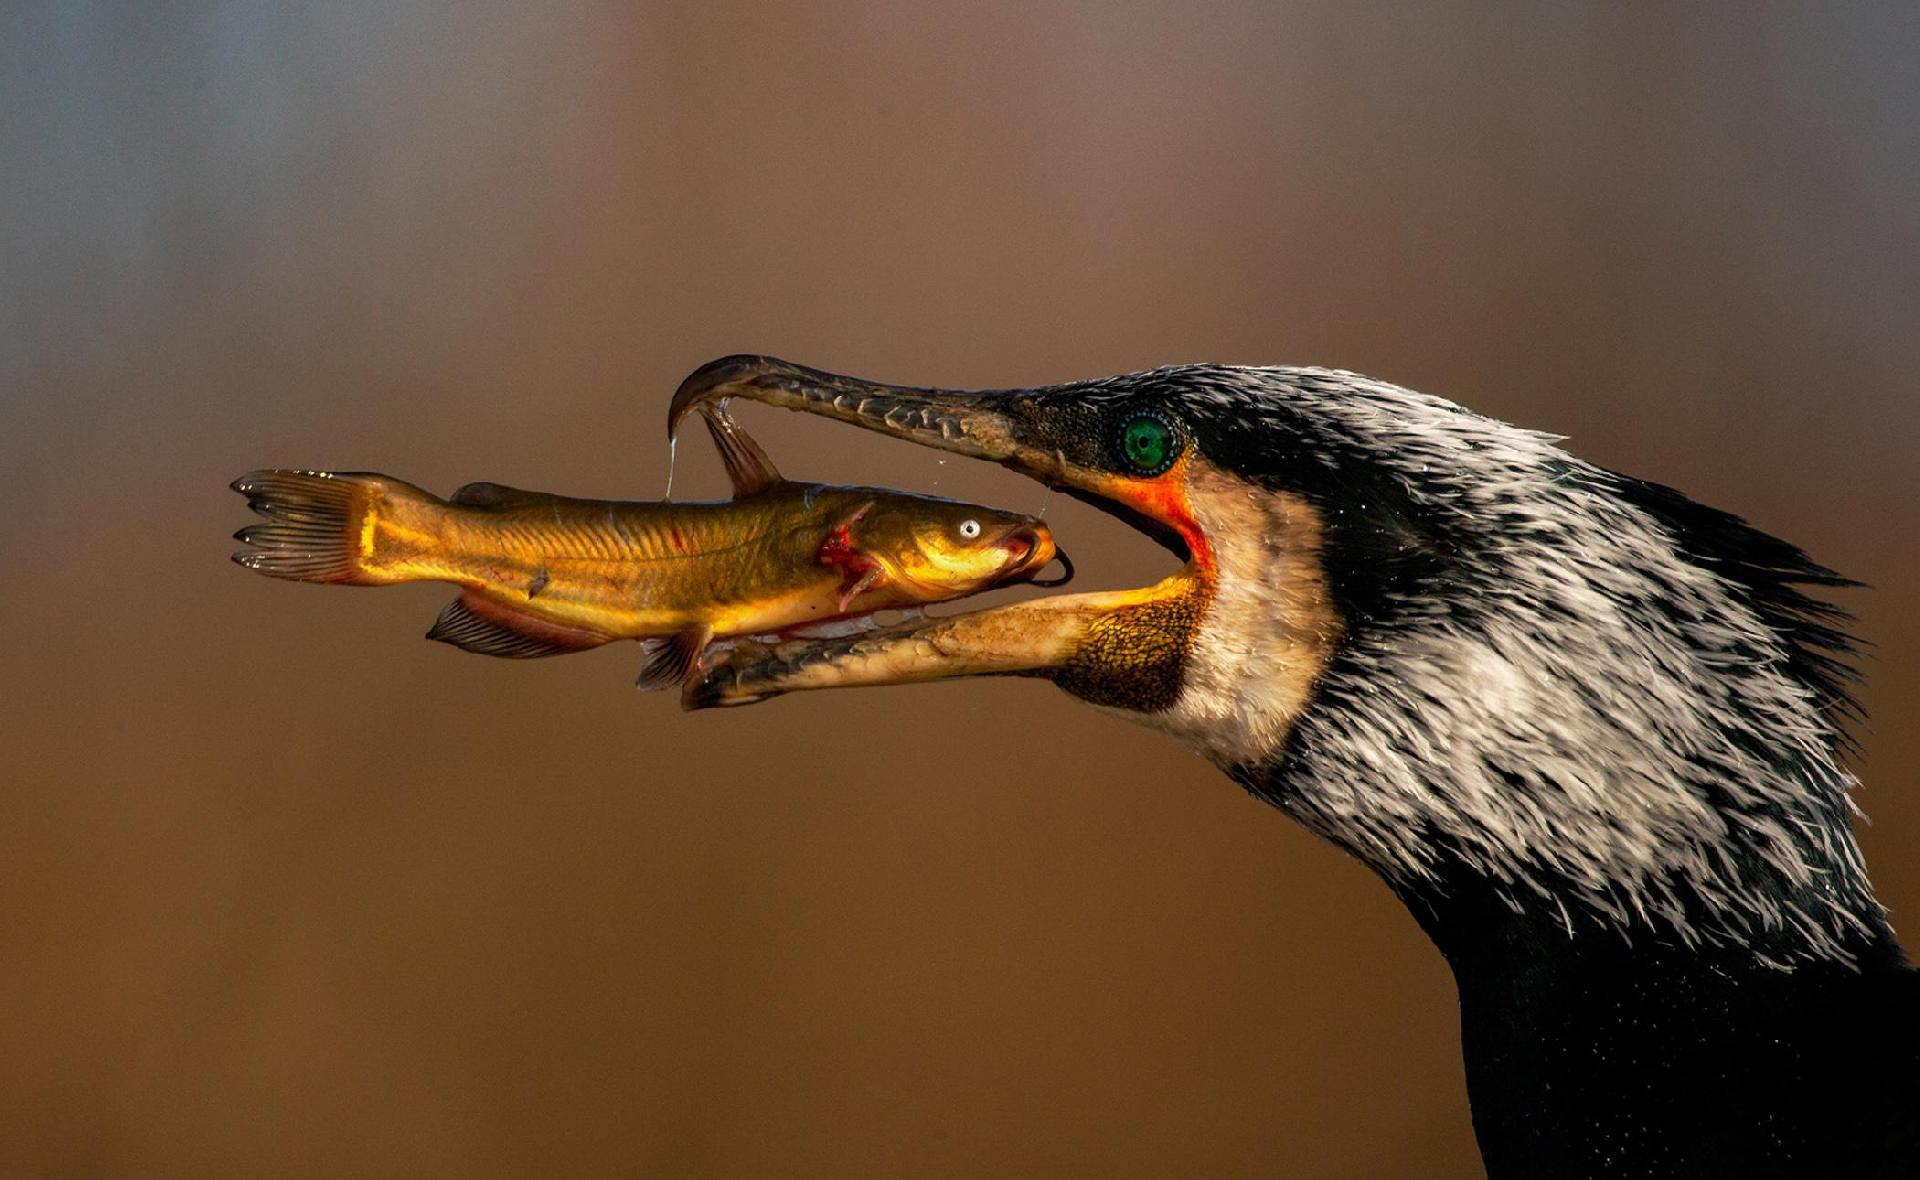 Aves Photos Exhibitions - Nature Photography Festival in Namur